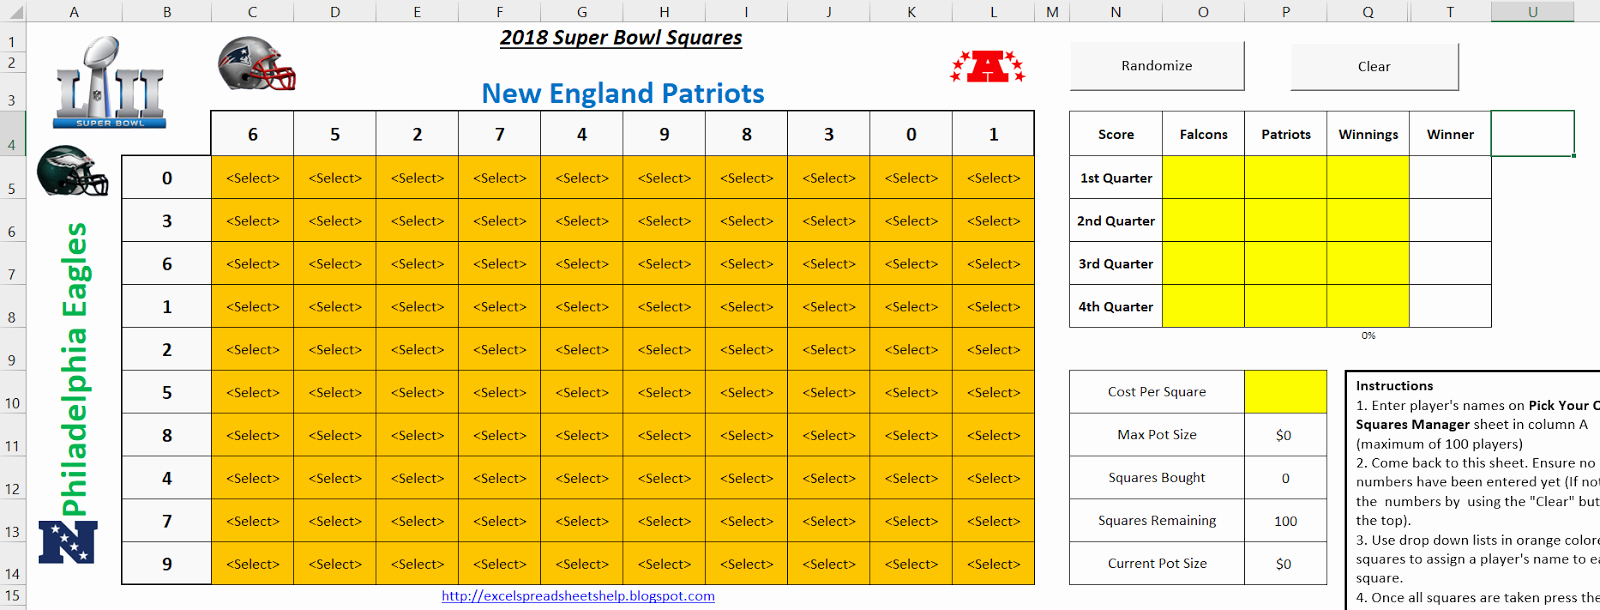 Super Bowl Squares Template Excel Inspirational Excel Spreadsheets Help Super Bowl Squares Template 2018